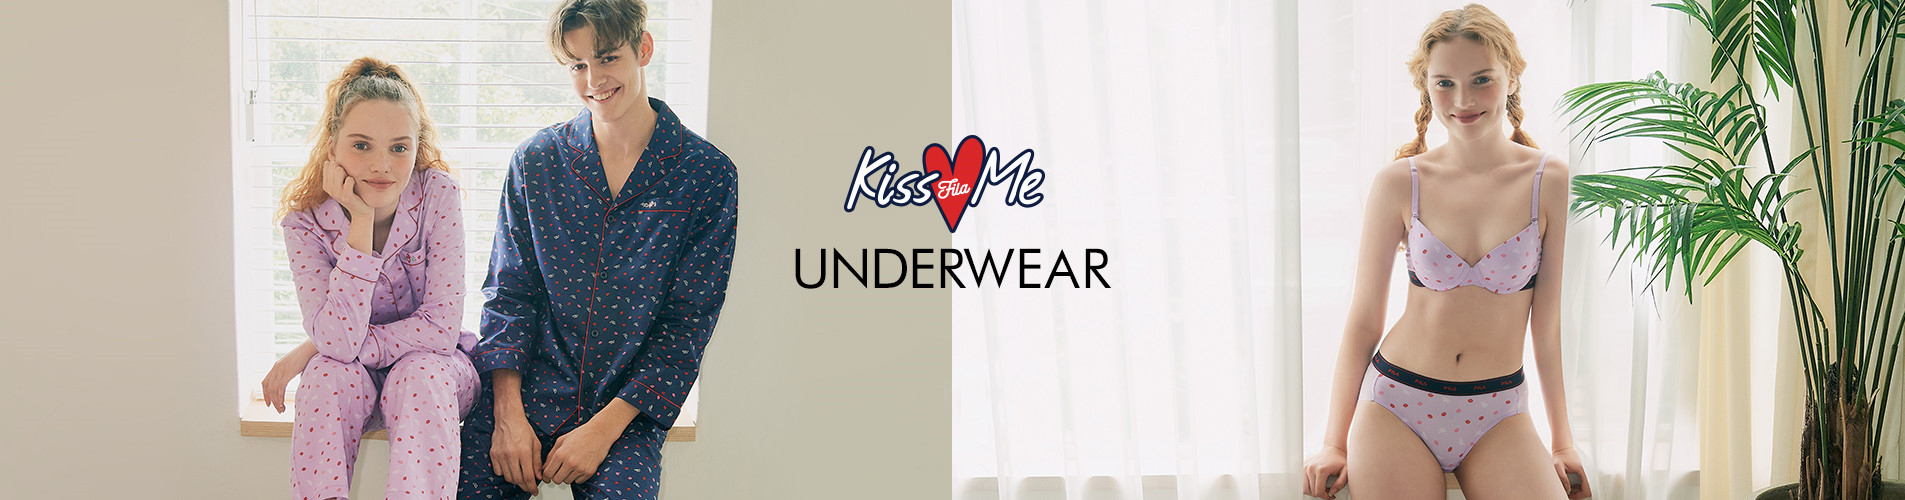 KISS ME UNDERWEAR<br> #PLAY AT HOME